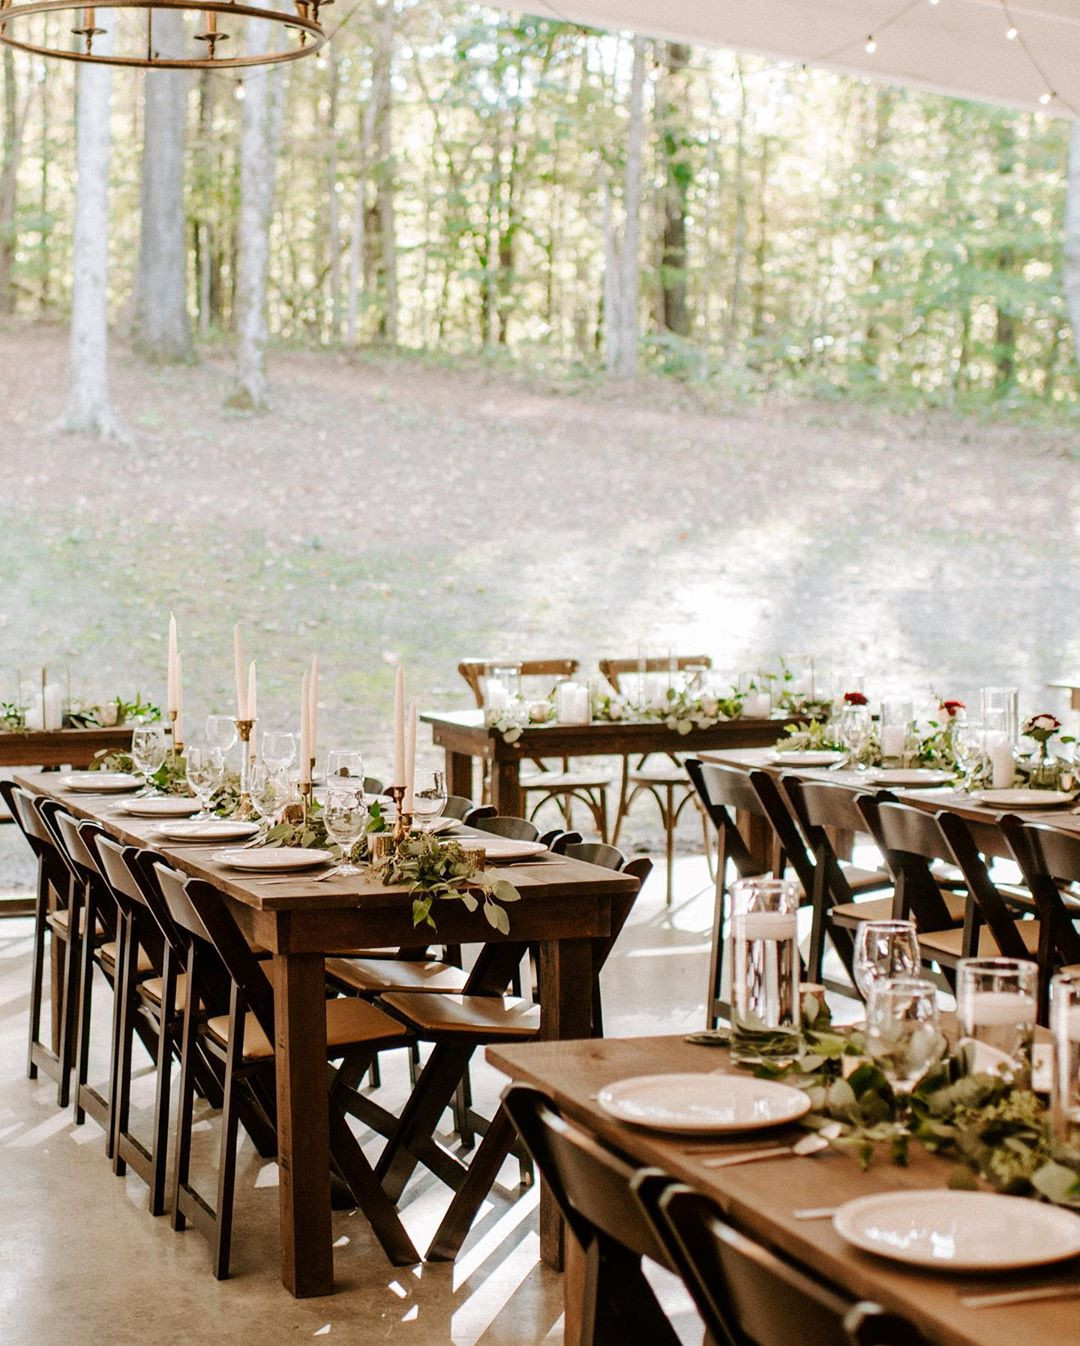 36 Charming Outdoor Wedding Ideas for Spring,#Wedding Spring,Wedding Spring